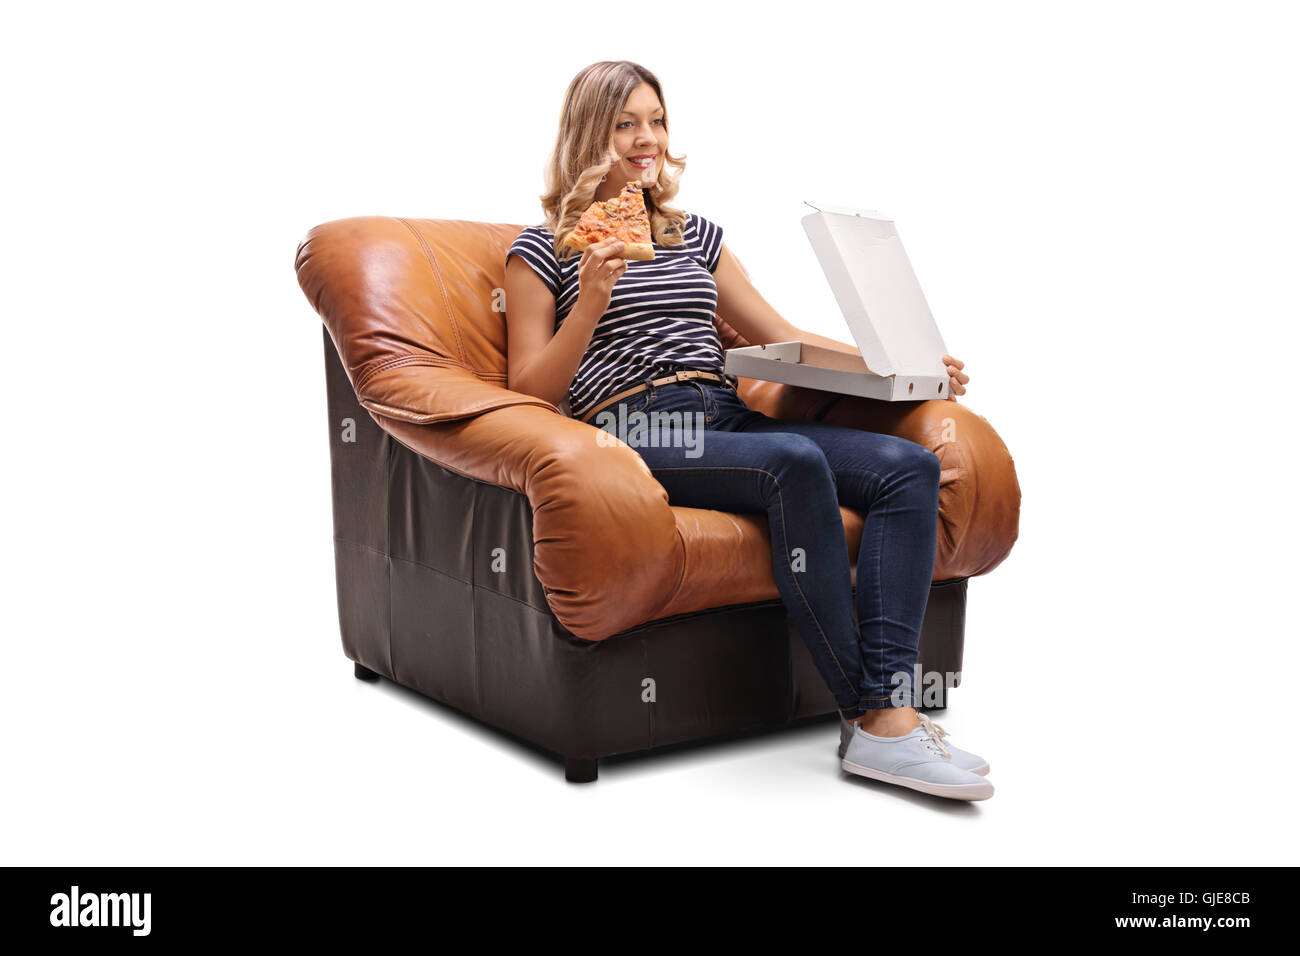 Young woman seated on an armchair having a slice of pizza and watching tv isolated on white background - Stock Image